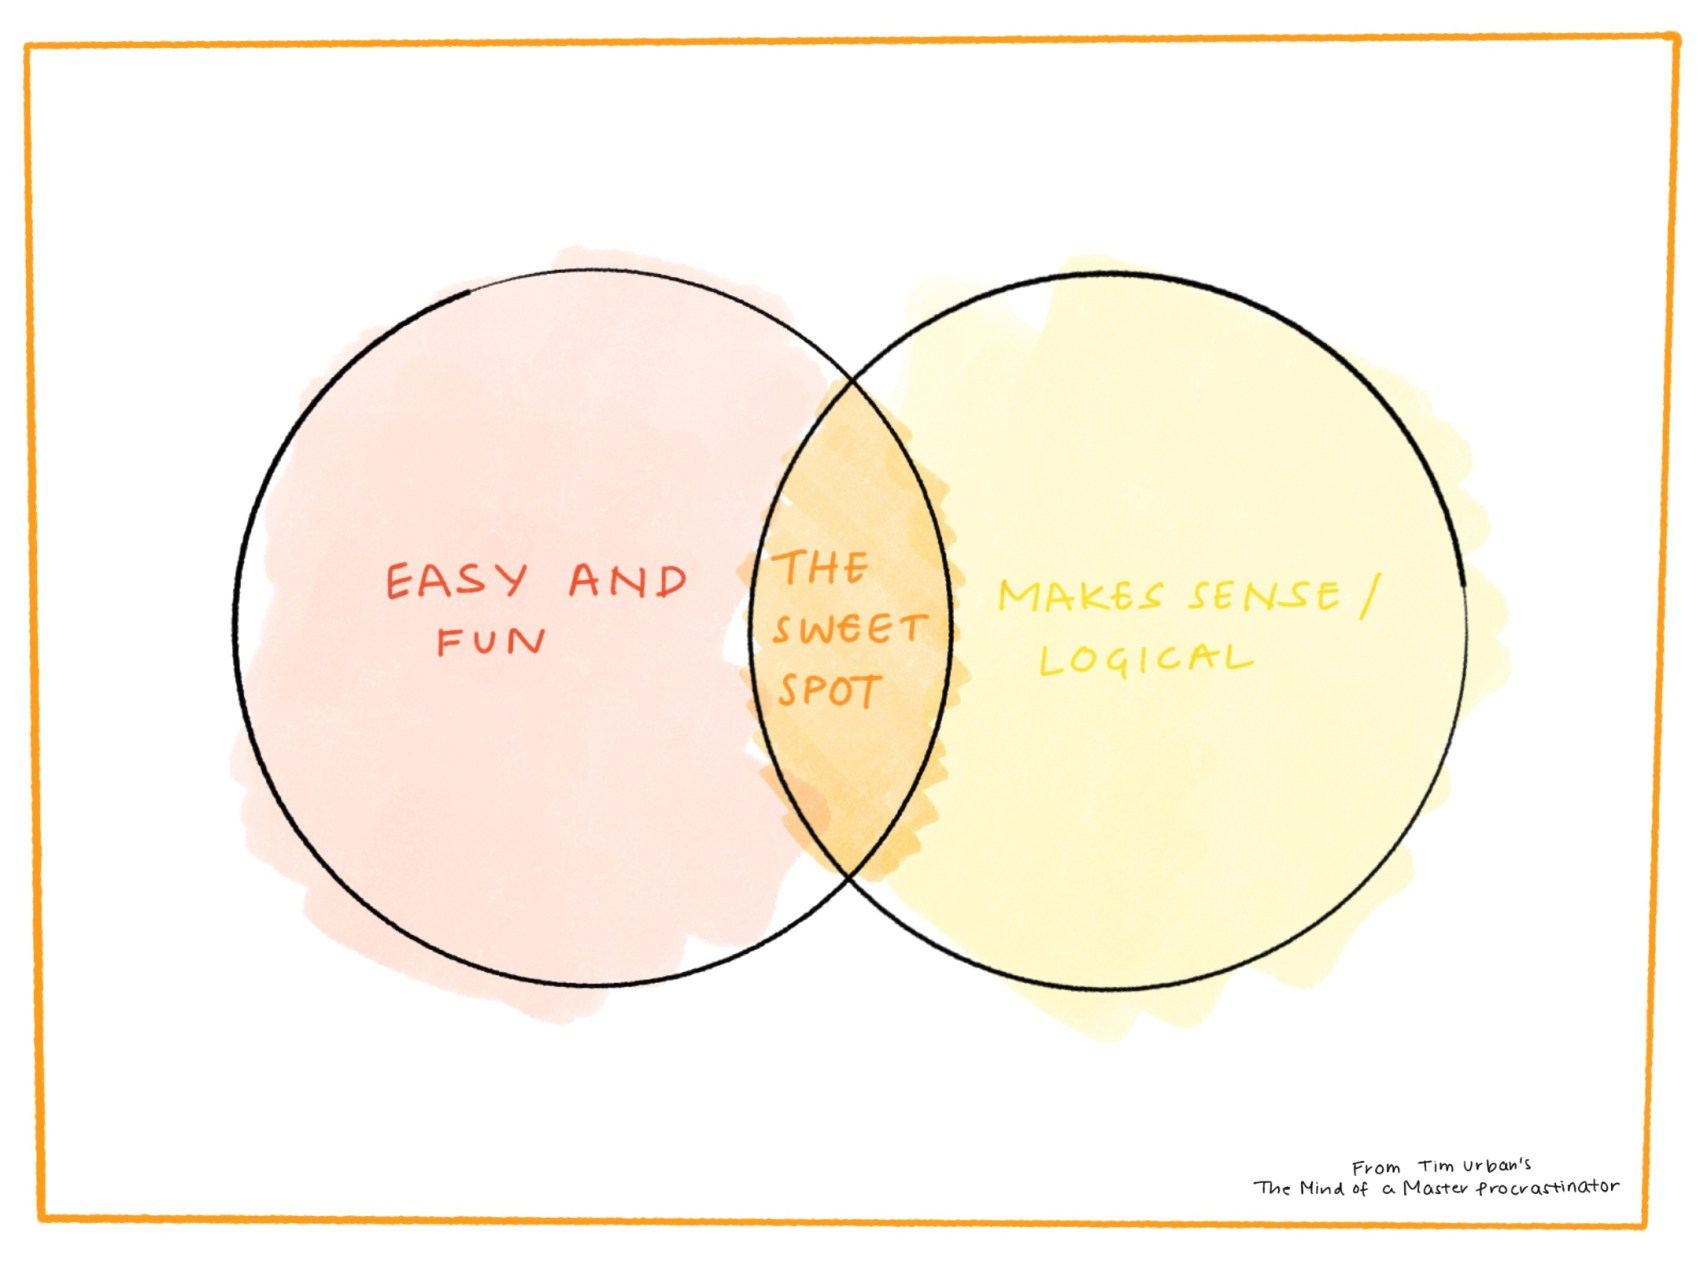 Venn Diagram of Easy and Fun, Makes sense / Logical and the Sweet Spot